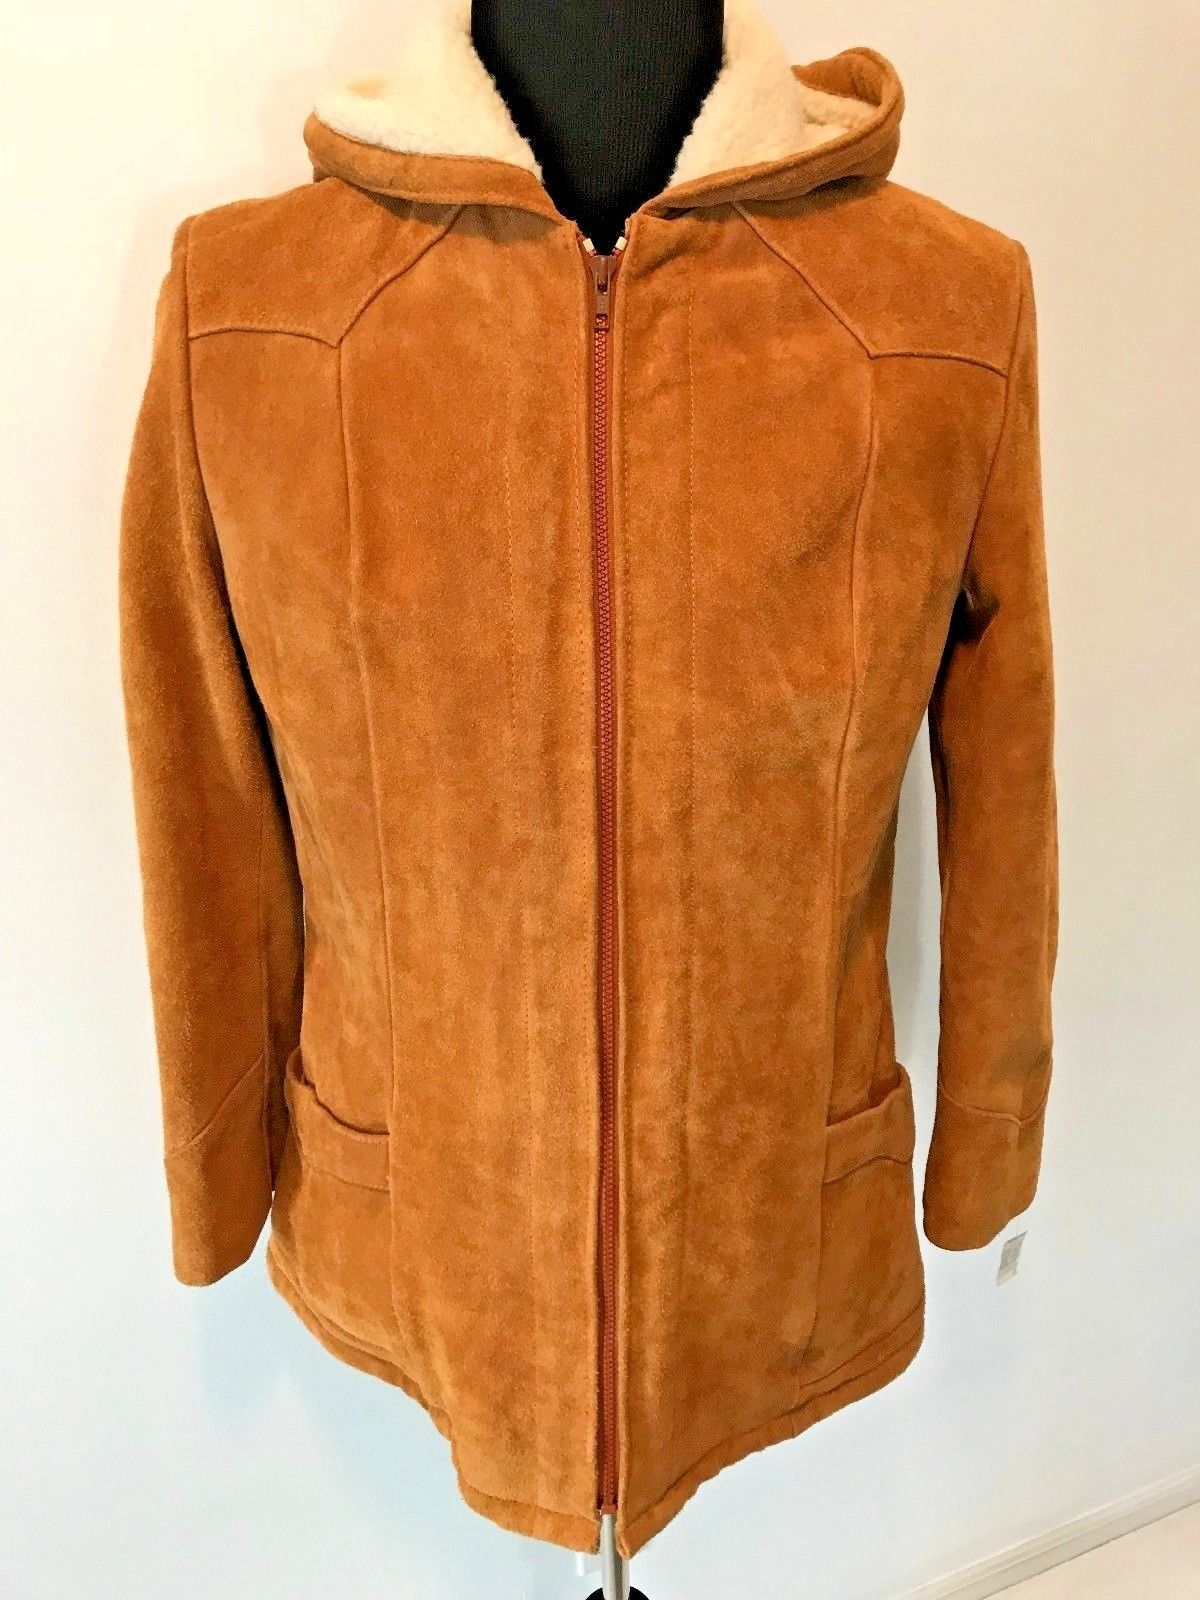 d9ad6a10fcb5d S l1600. S l1600. Previous. Vintage JCPenney Cowhide Suede Sherpa Lined  Hooded Jacket Coat NWT size ...